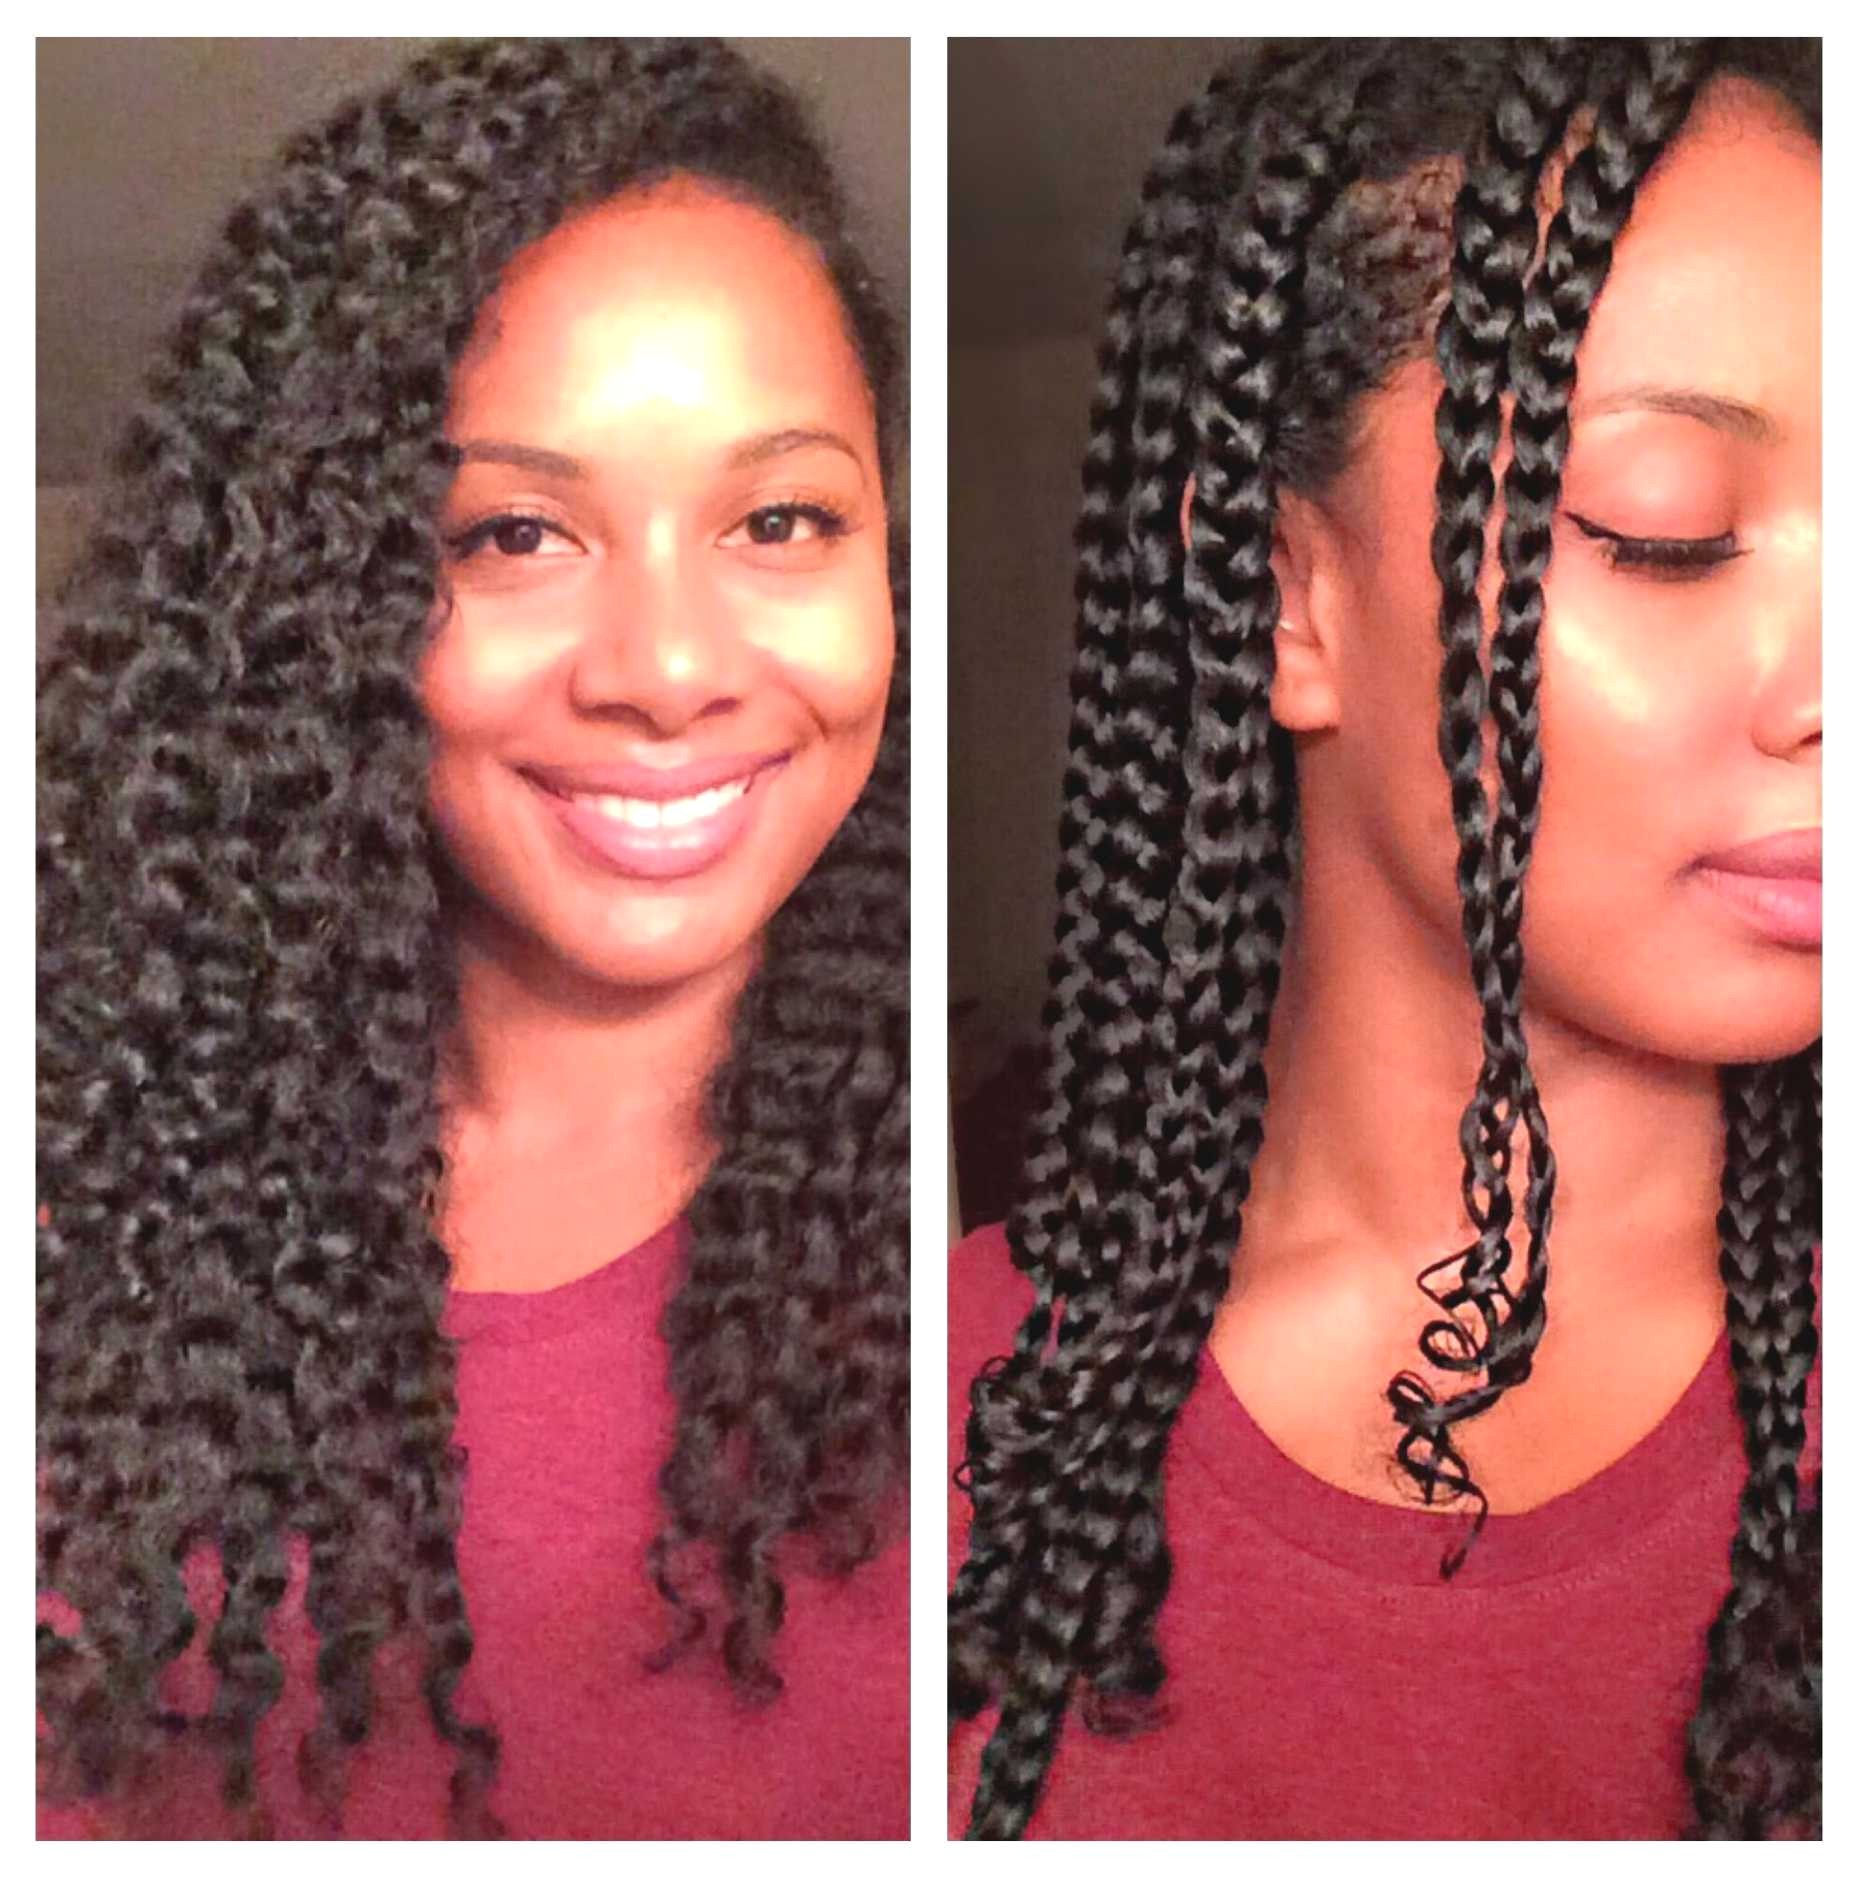 Braids Hairstyles for Black Ladies Updo Braid Hairstyles Black Hair Unique Hairstyles and Cuts Elegant